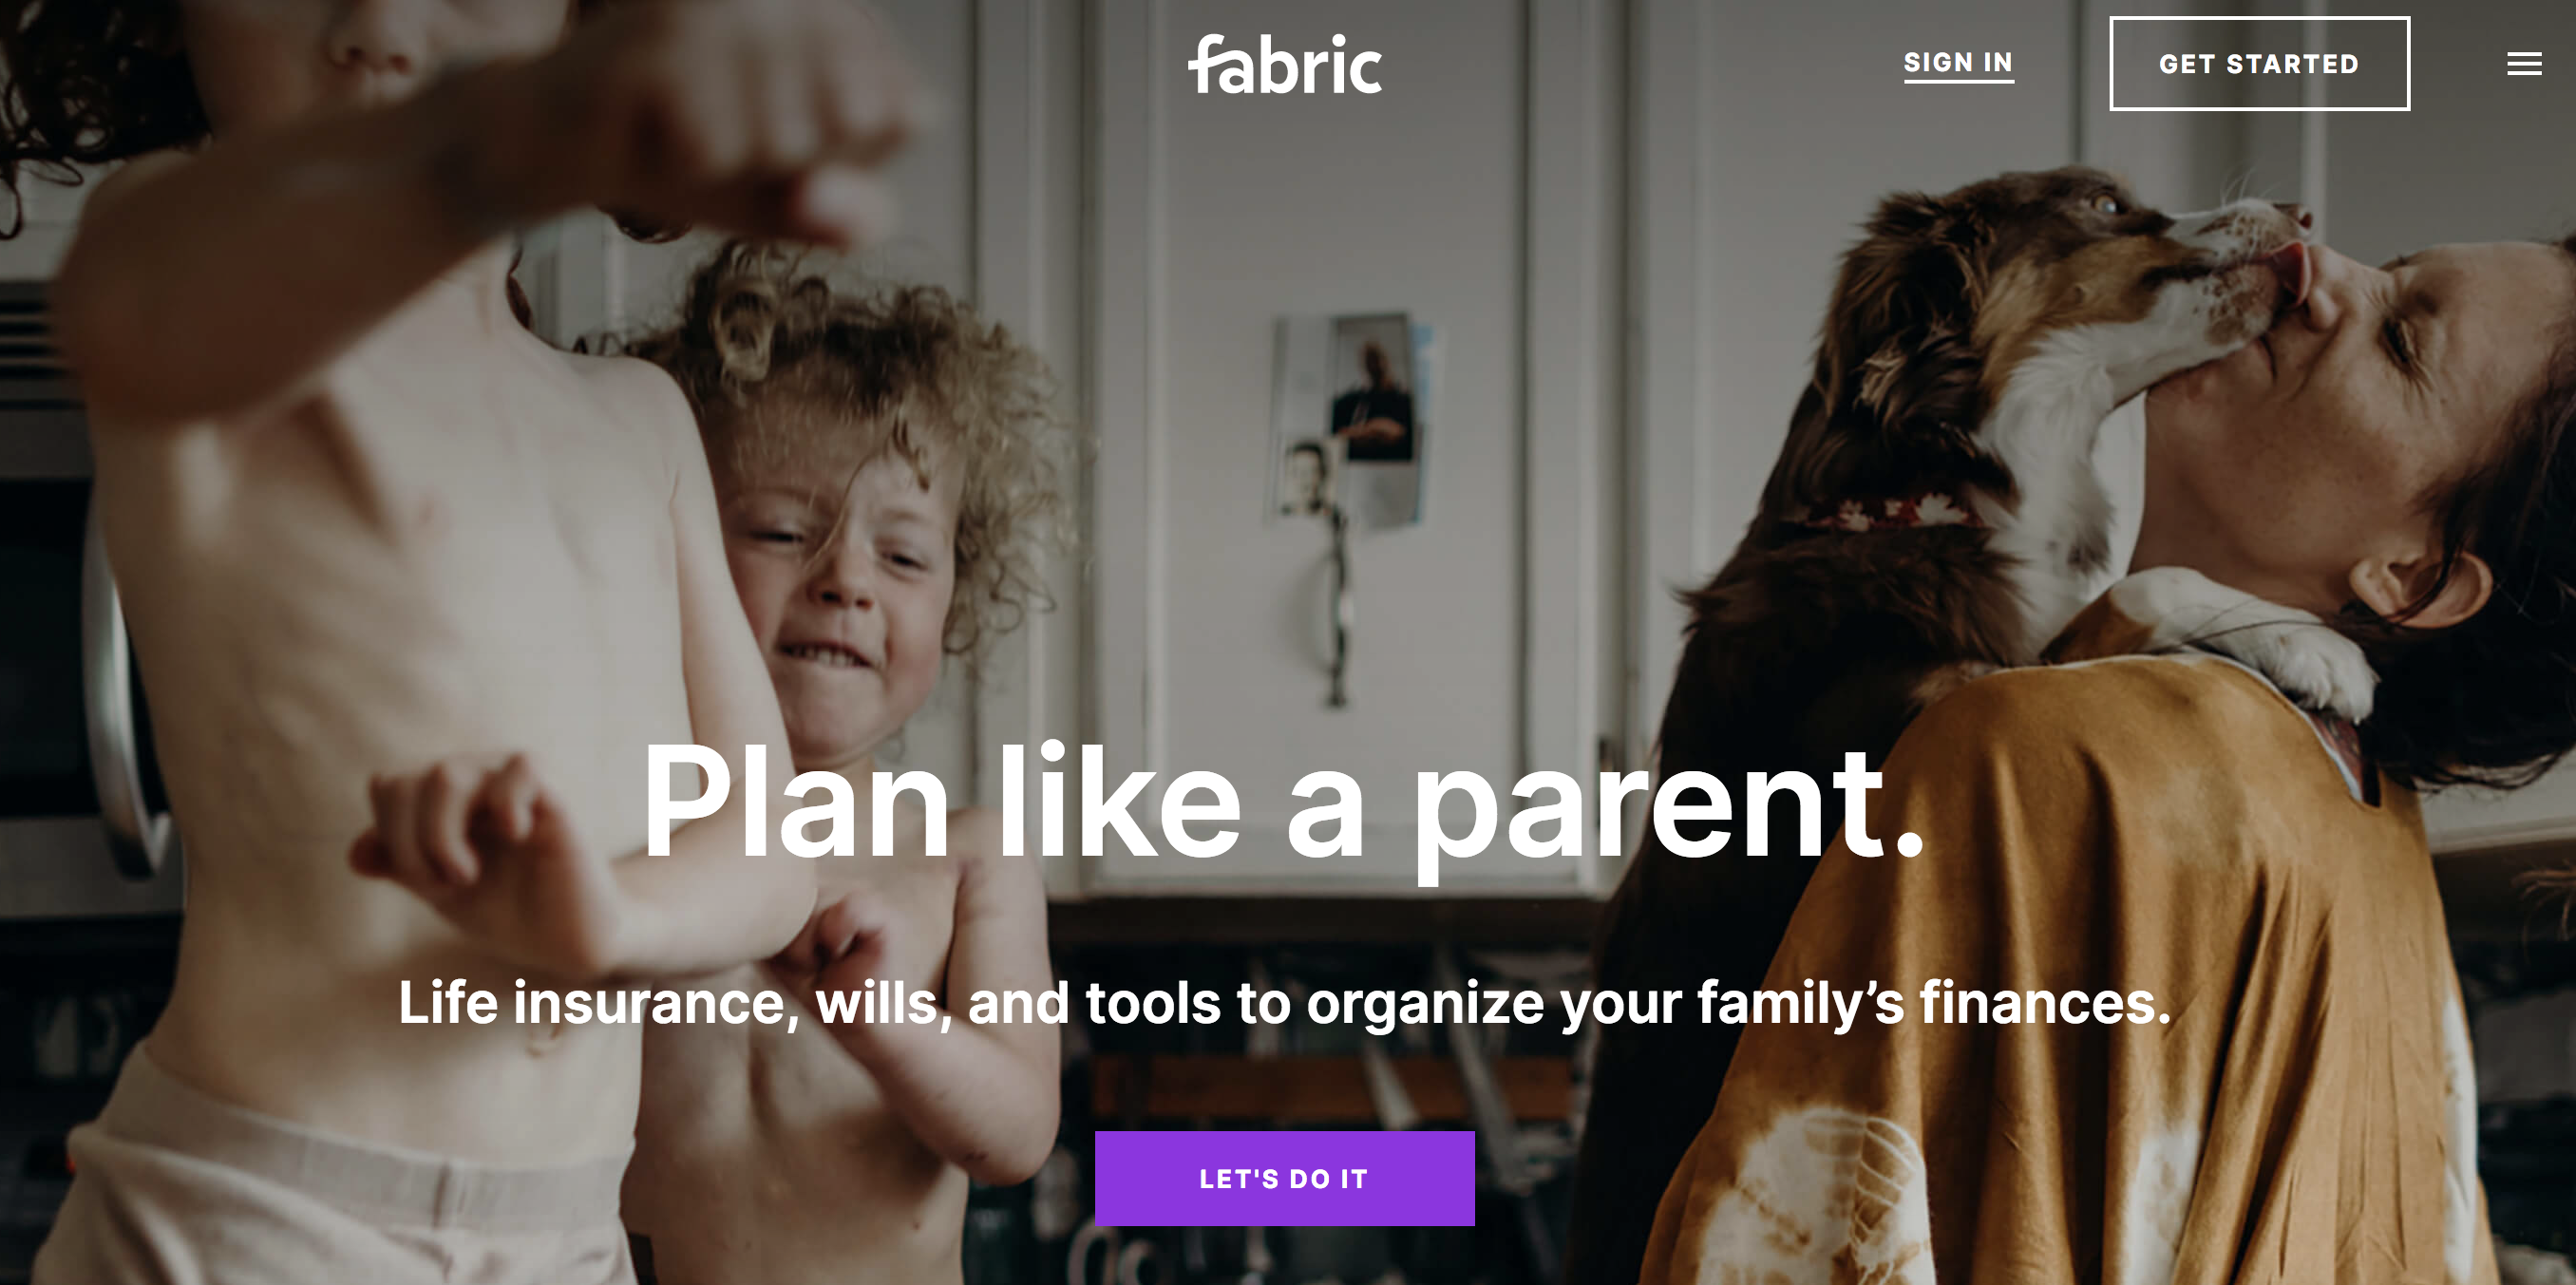 Fabric's New App Helps Parents with Wills, Life Insurance & Shared Finances